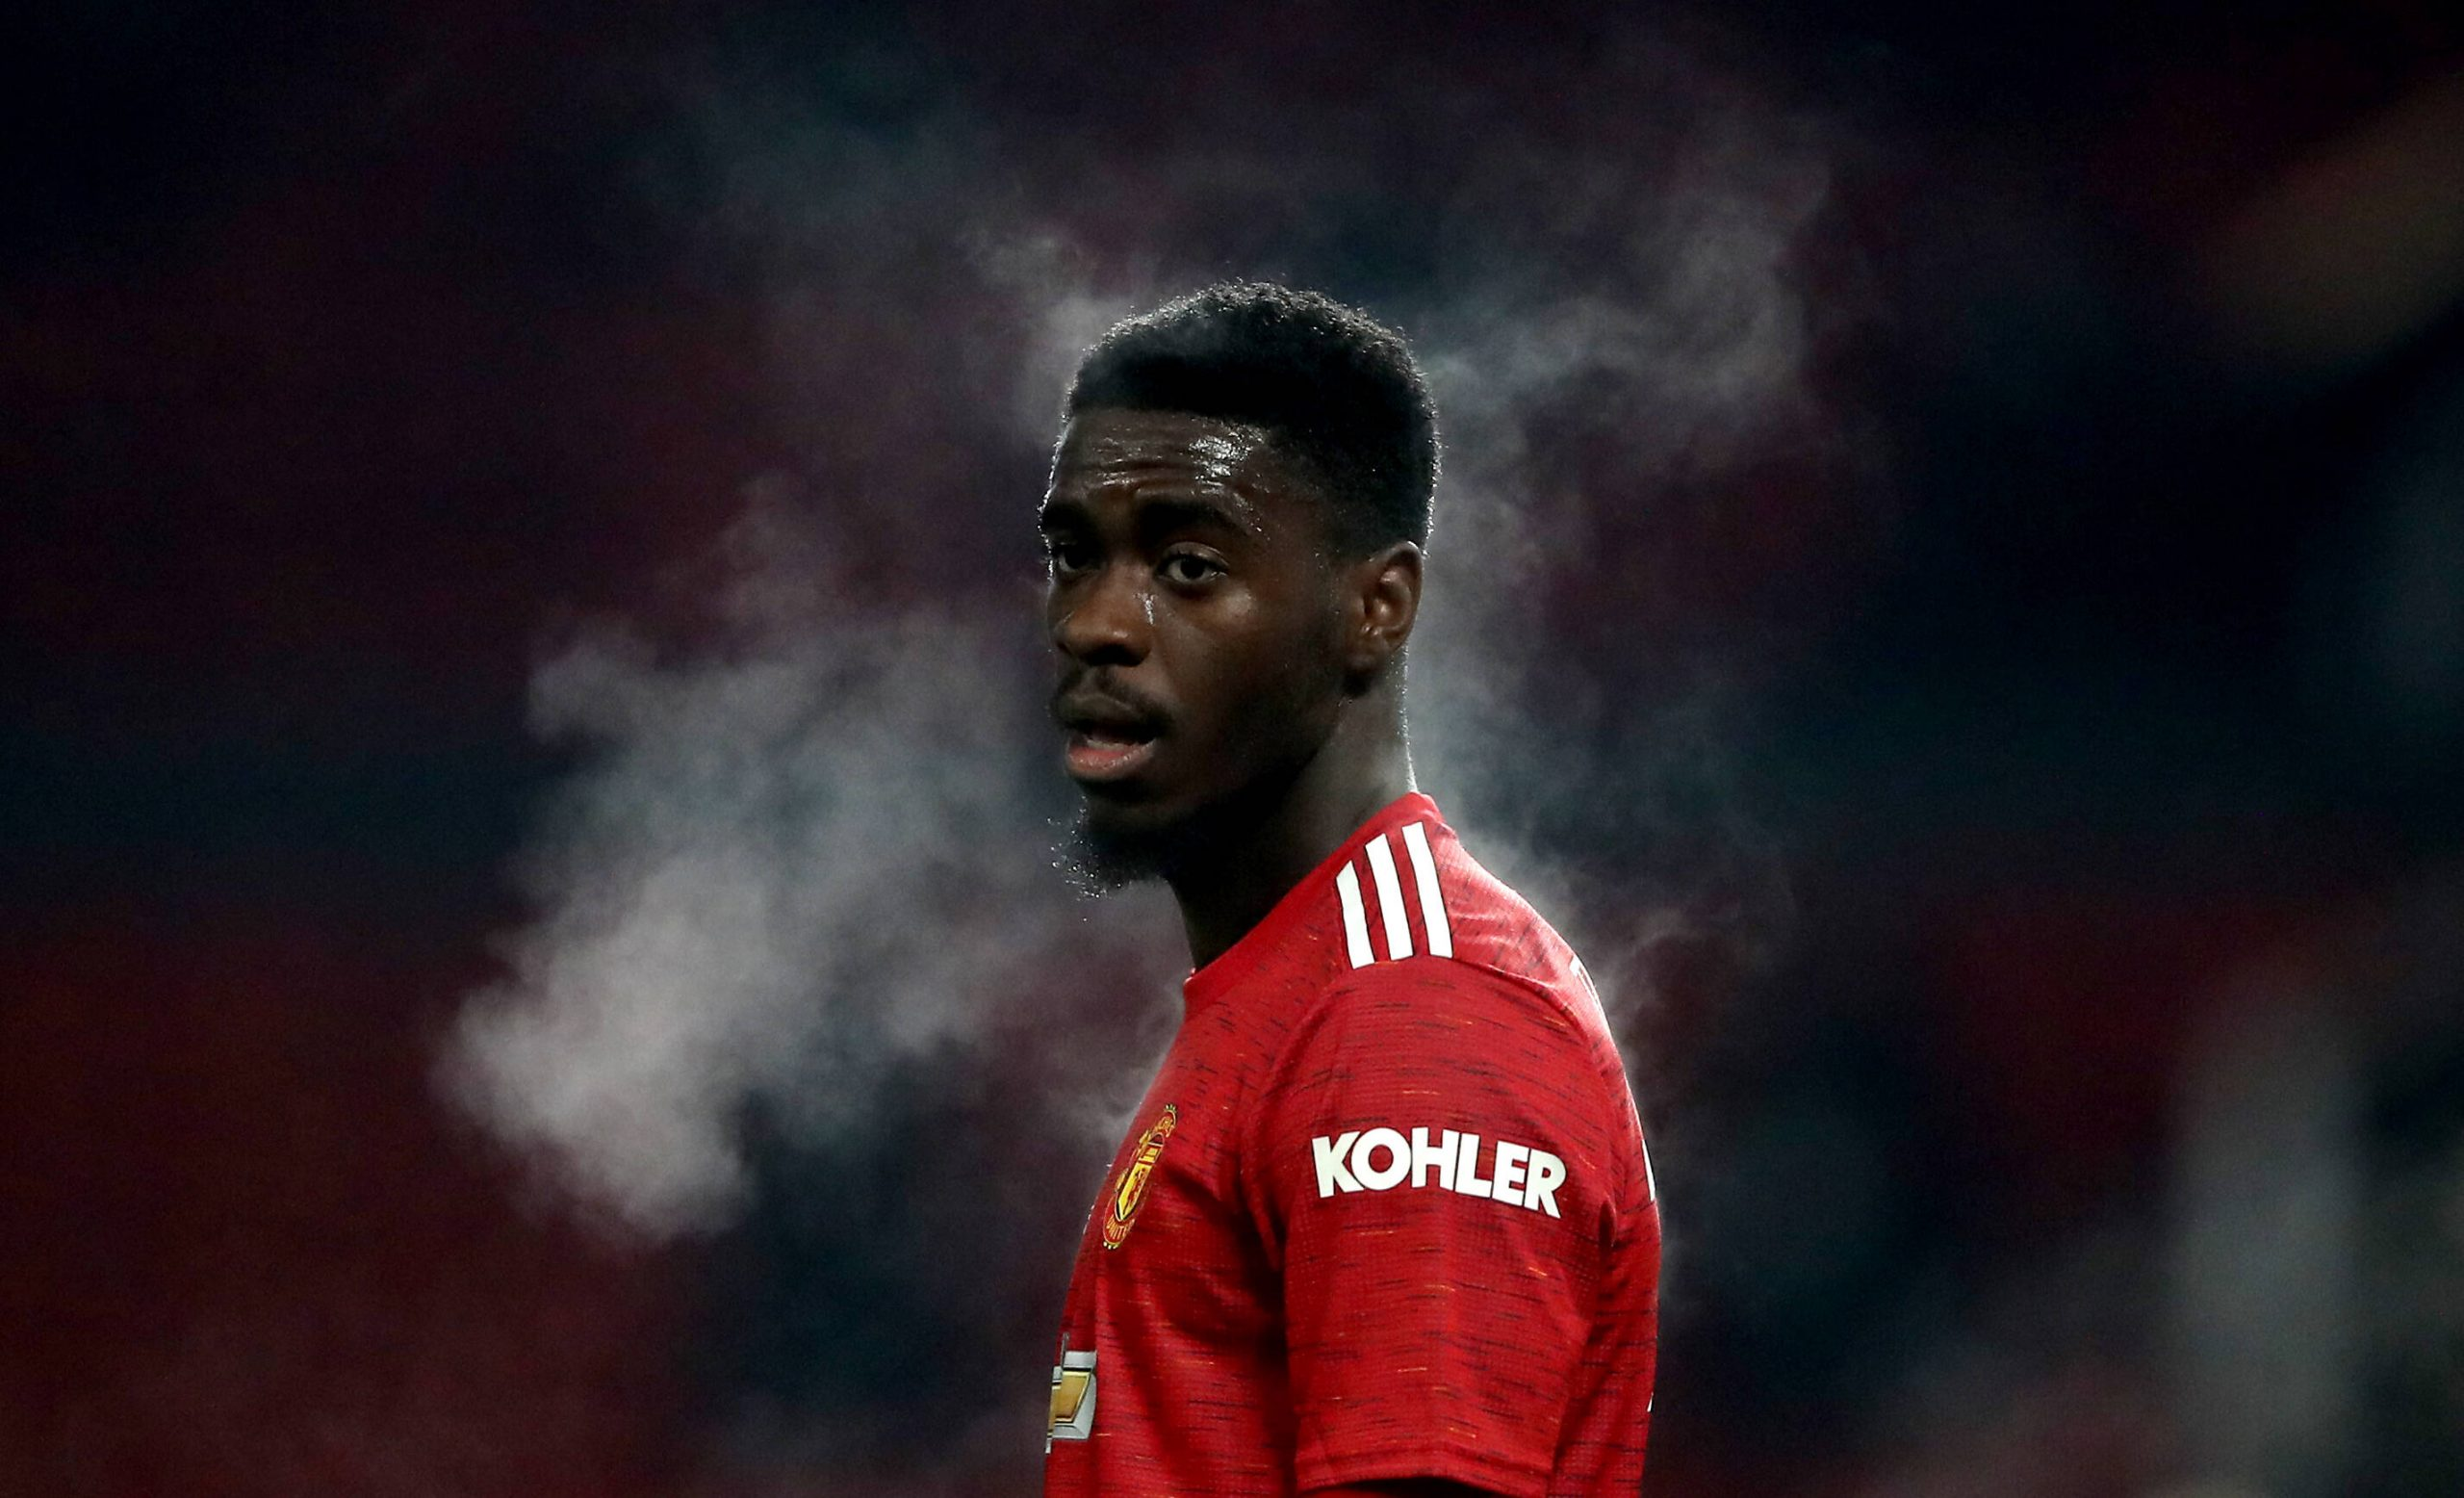 'You do not want to feel like that again' - Tuanzebe says Man Utd progress inspired by prior Solskjaer slumps - Bóng Đá